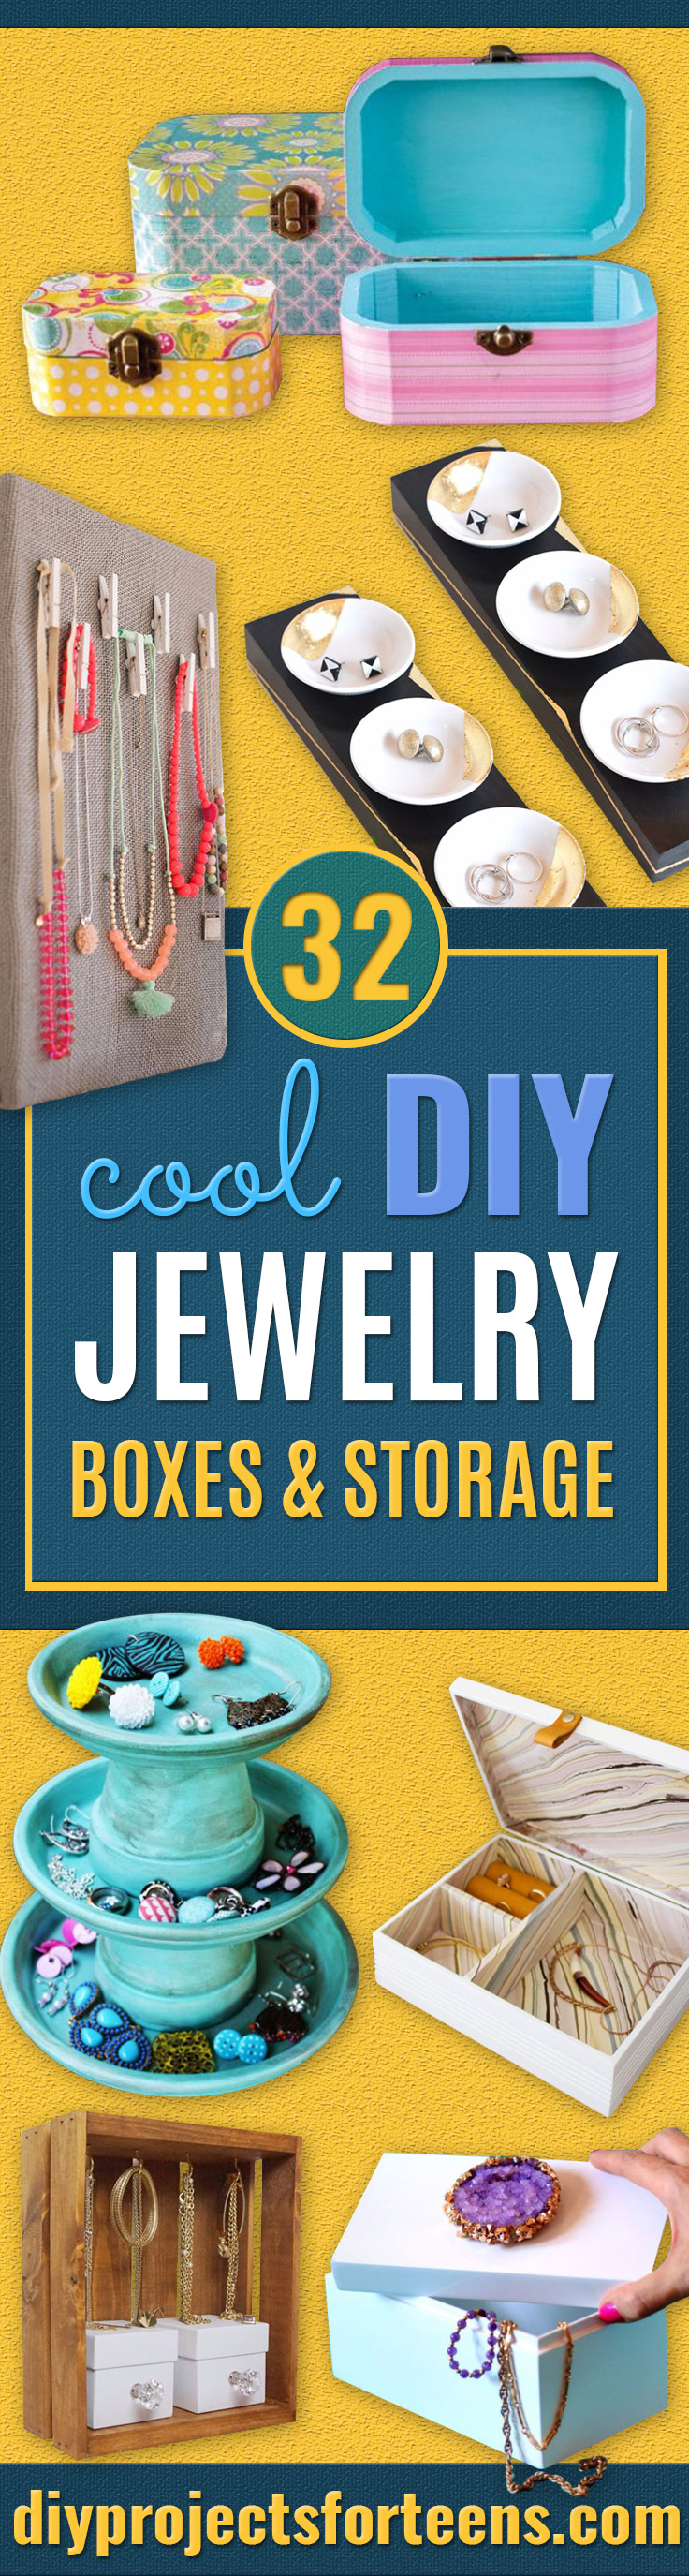 DIY Jewelry Storage - Do It Yourself Crafts and Projects for Organizing, Storing and Displaying Jewelry - Earrings, Rings, Necklaces - Jewelry Tree, Boxes, Hangers - Cheap and Easy Ways To Organize Jewelry in Bedroom and Bathroom - Dollar Store Crafts and Cheap Ideas for Decorating http://diyprojectsforteens.com/diy-jewelry-storage